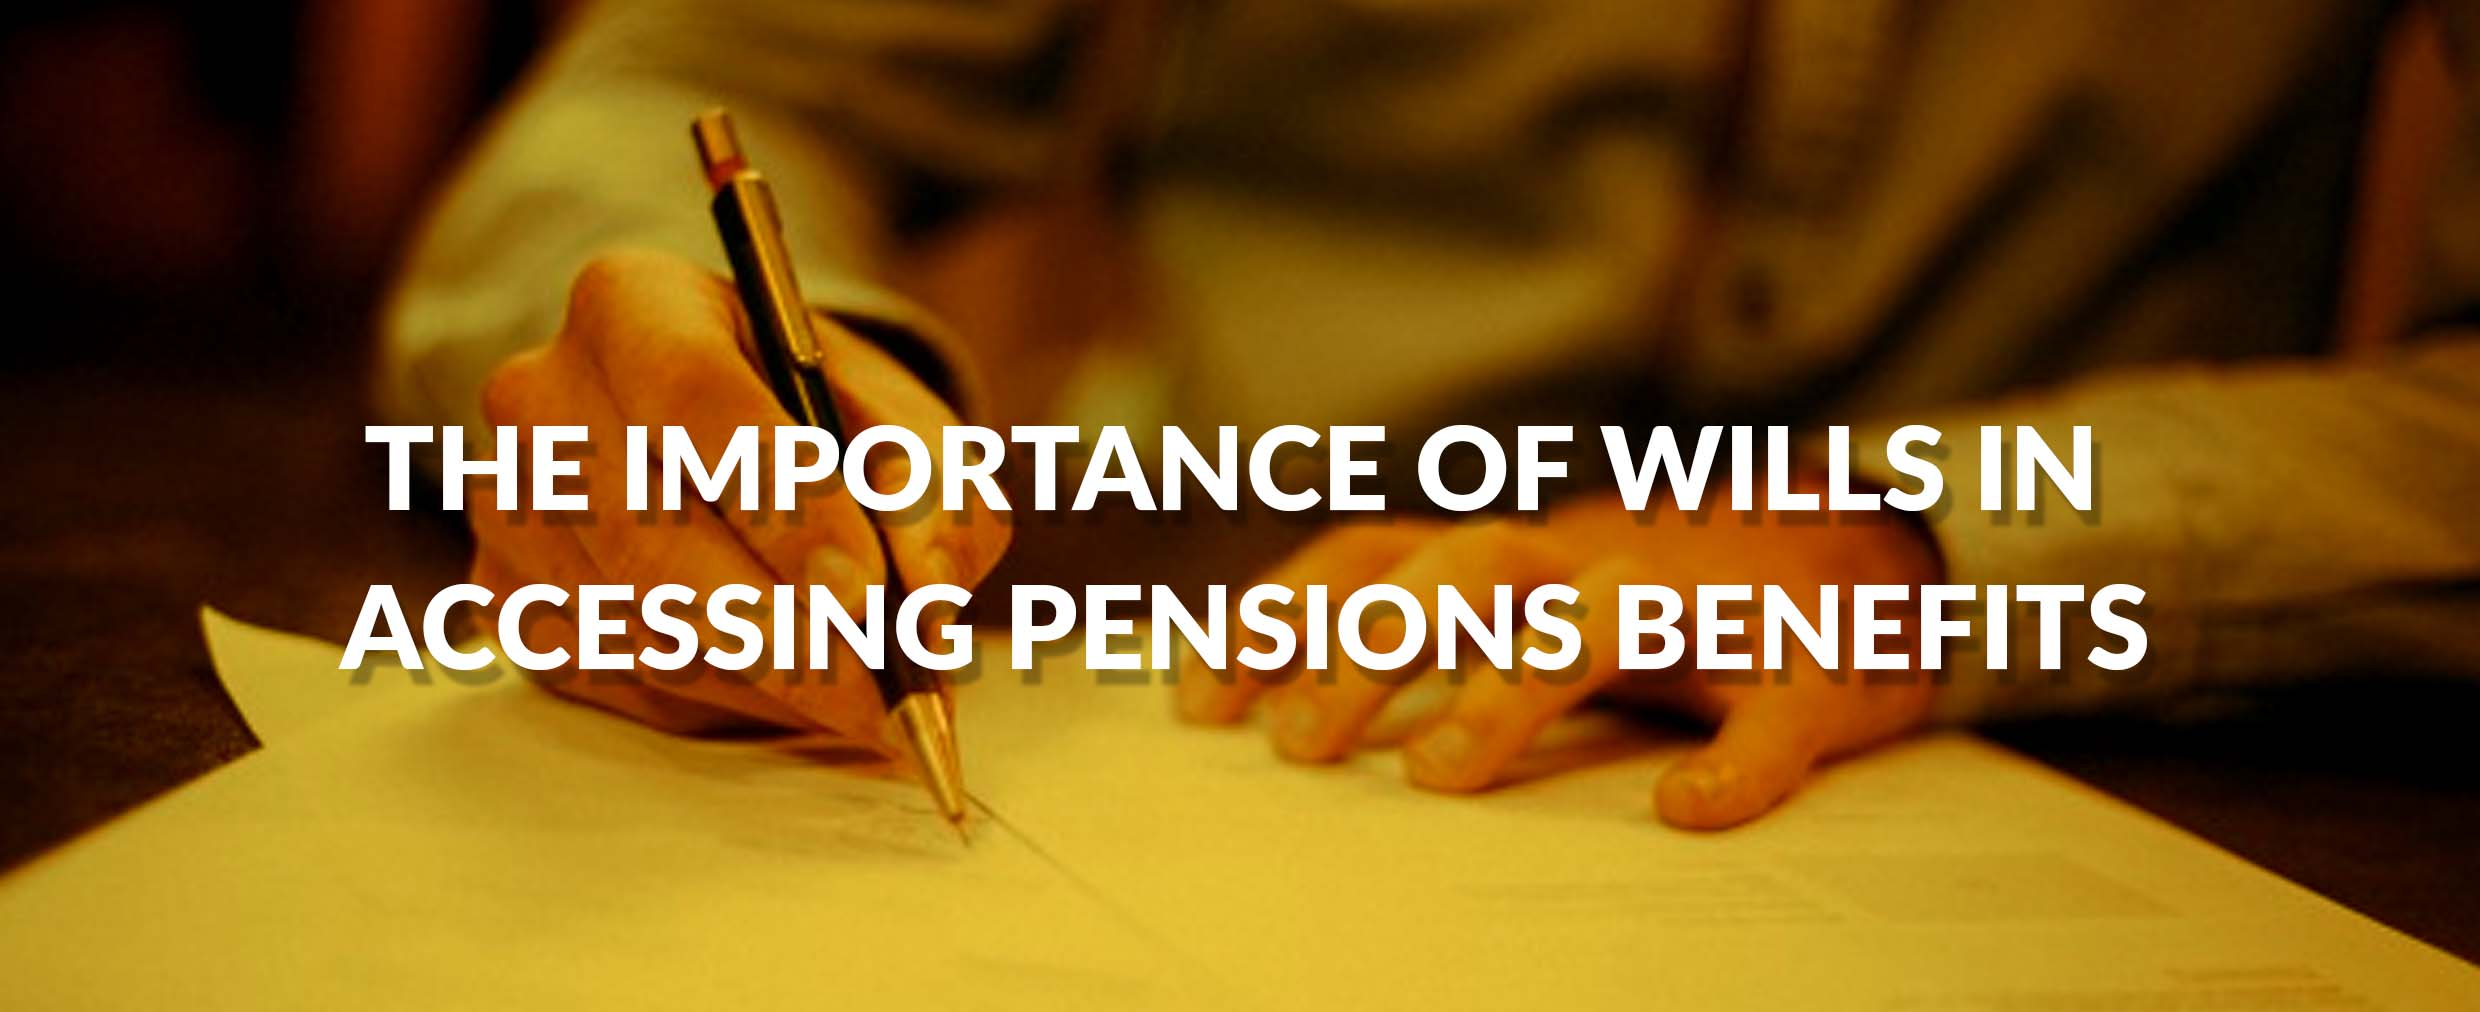 THE IMPORTANCE OF WILLS IN ACCESSING PENSIONS BENEFITS